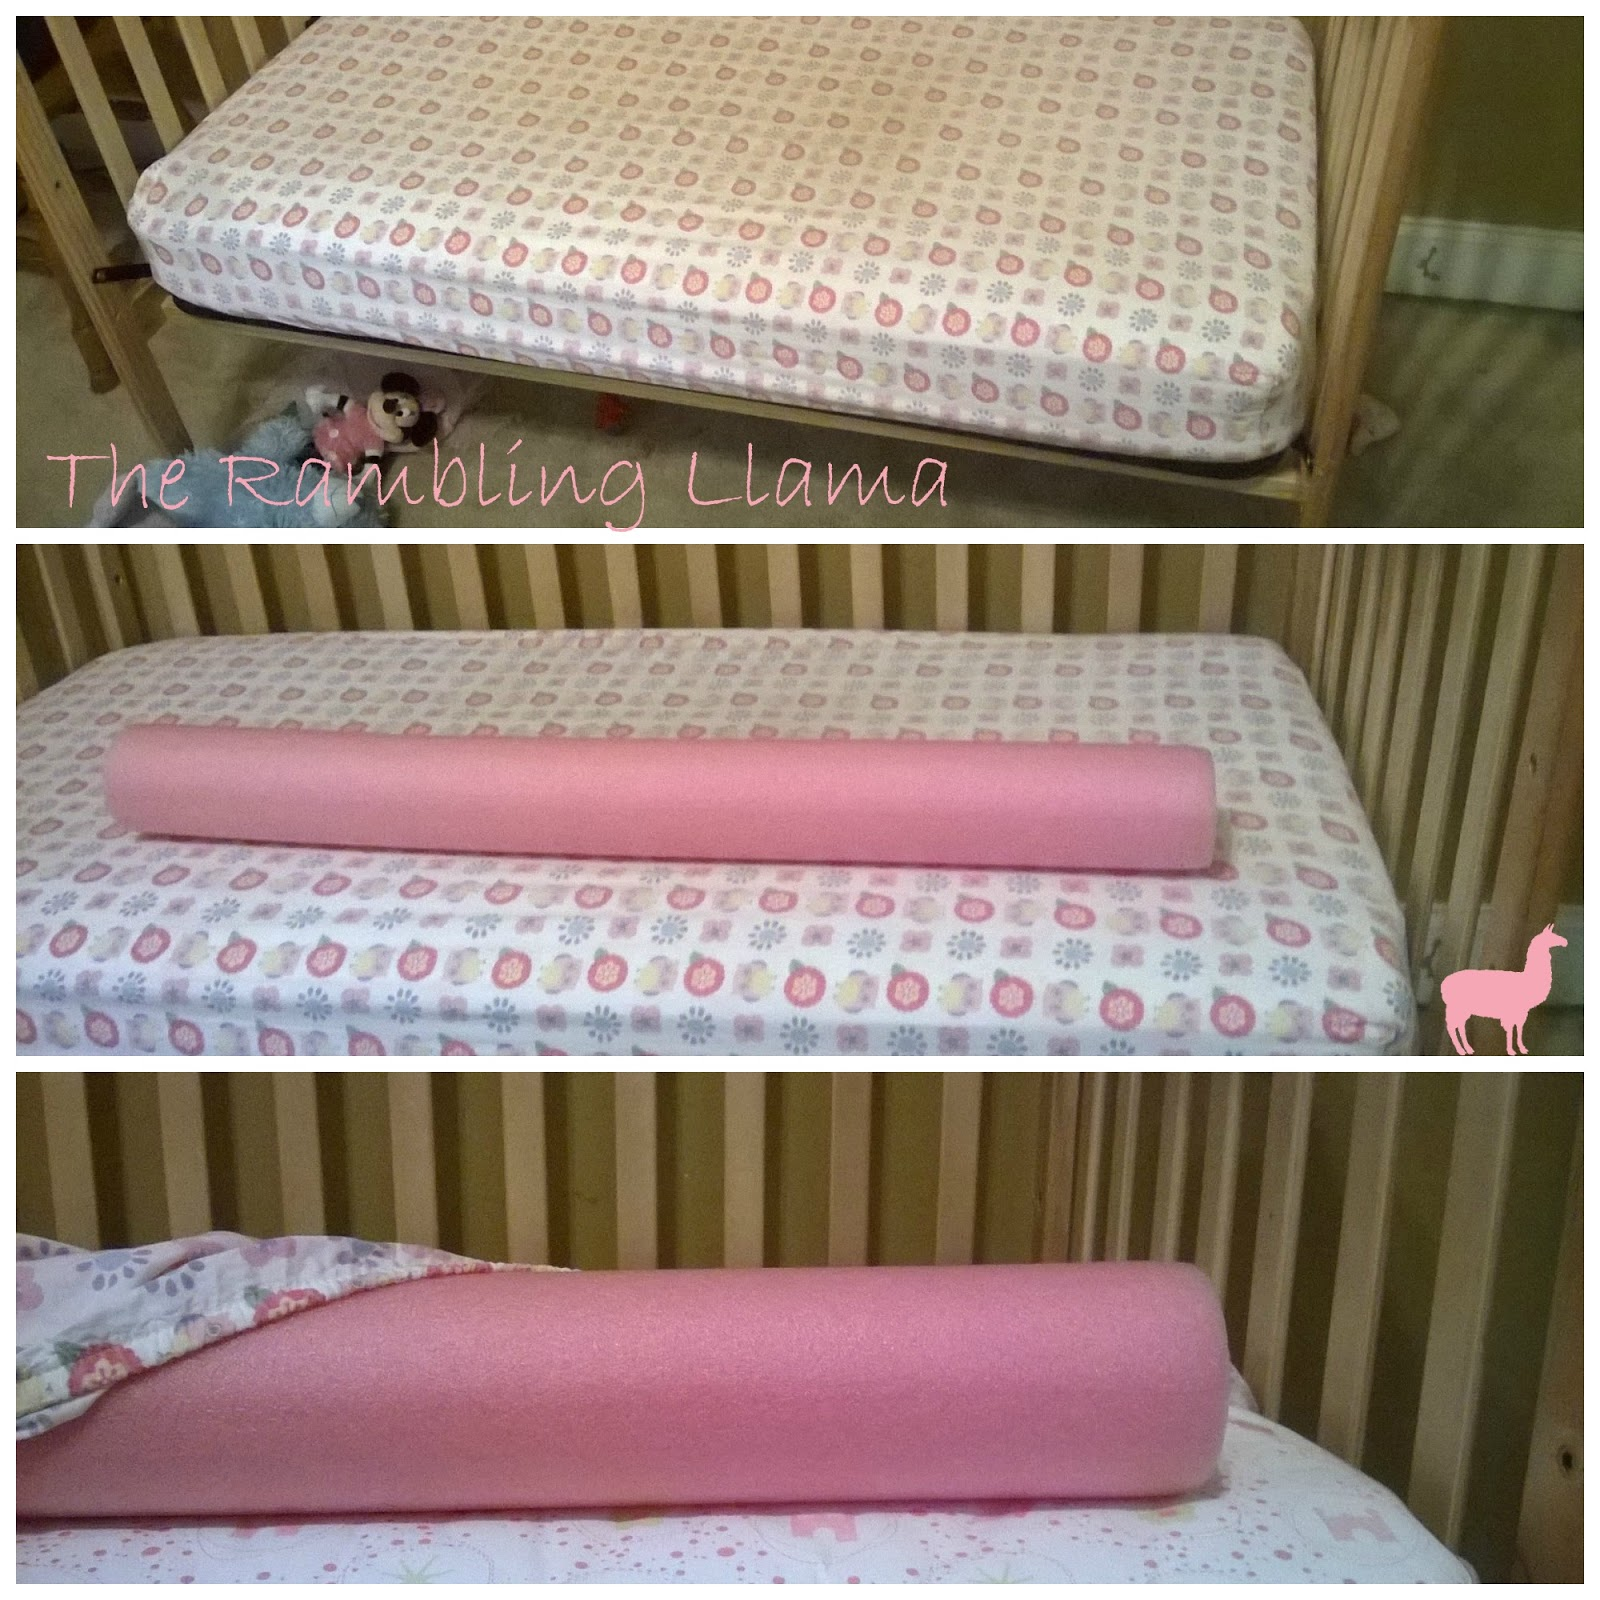 Toddler bed rail pictures to pin on pinterest - Homemade Bed Rails Pictures To Pin On Pinterest Pinsdaddy